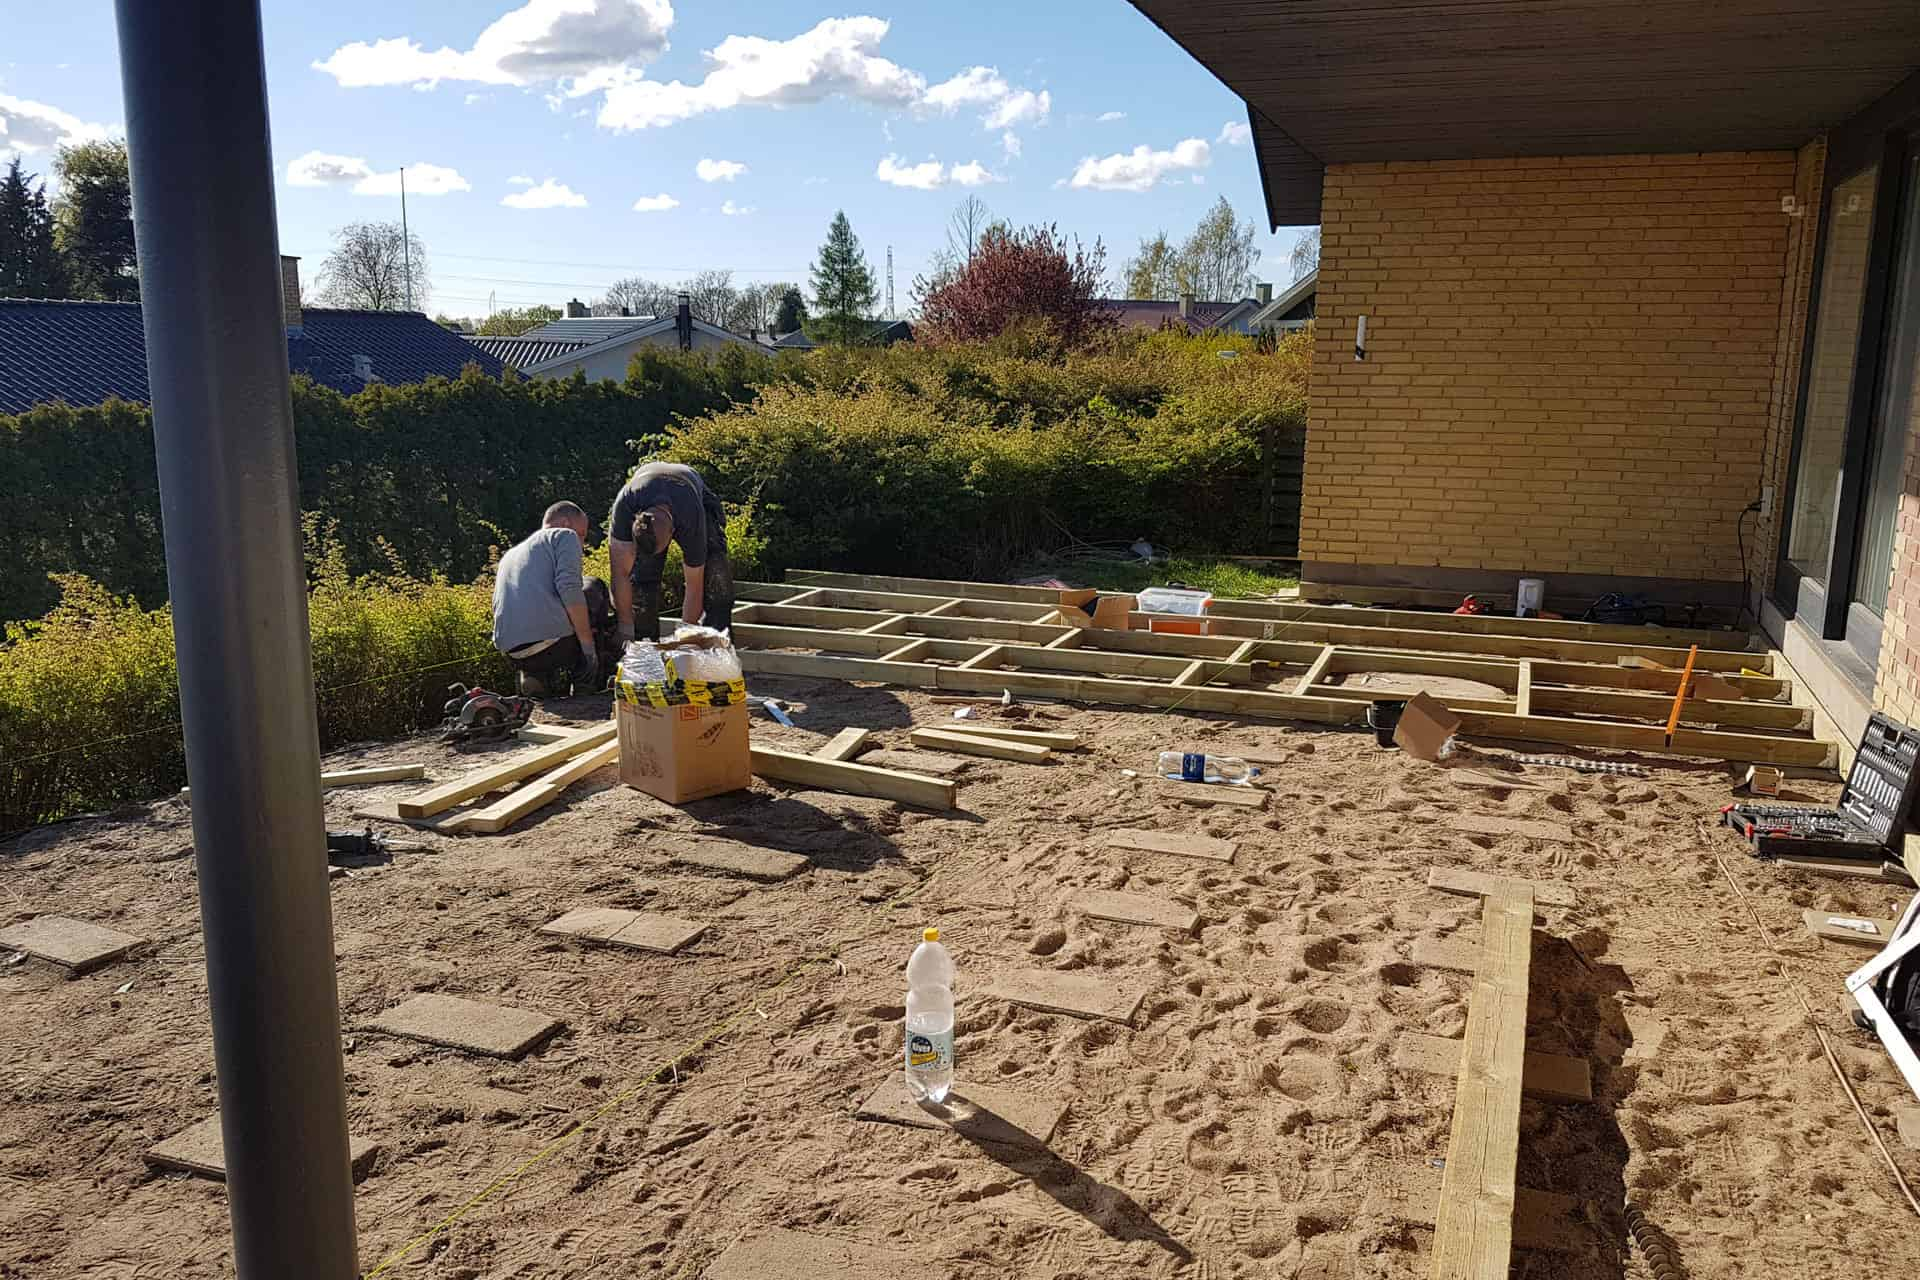 How to build a deck - Leveling with pavers